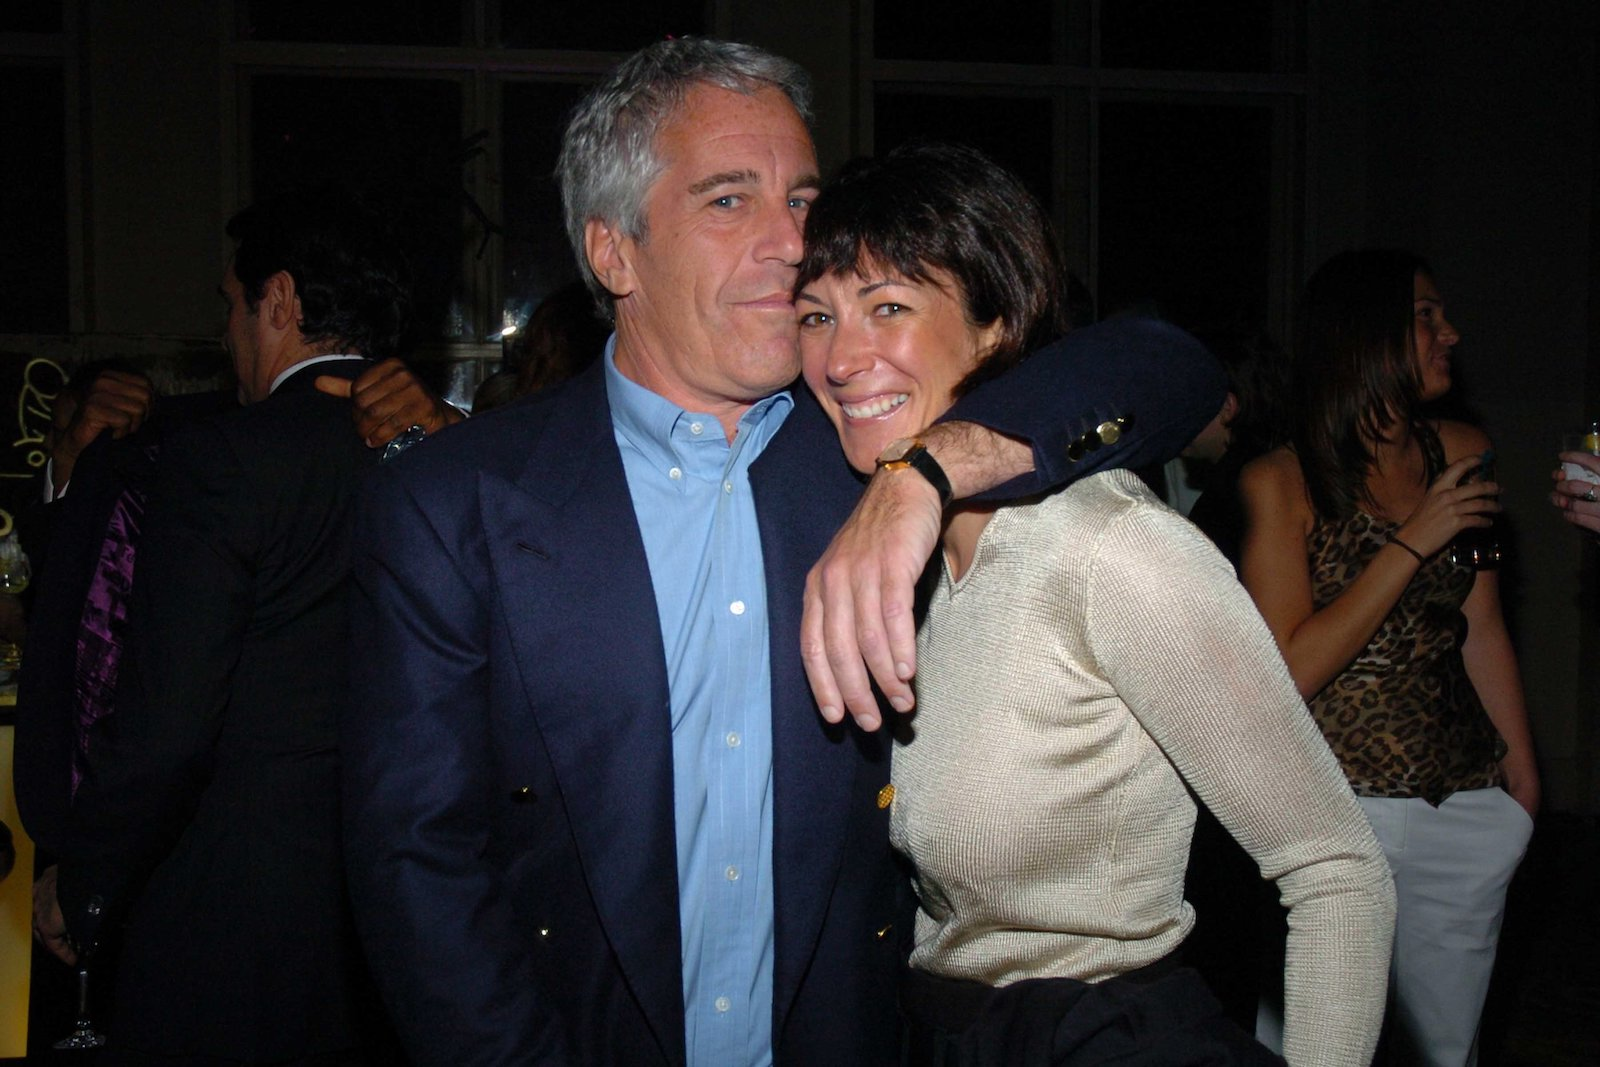 What's going on with George Clooney and his wife? Georgeclooney-04